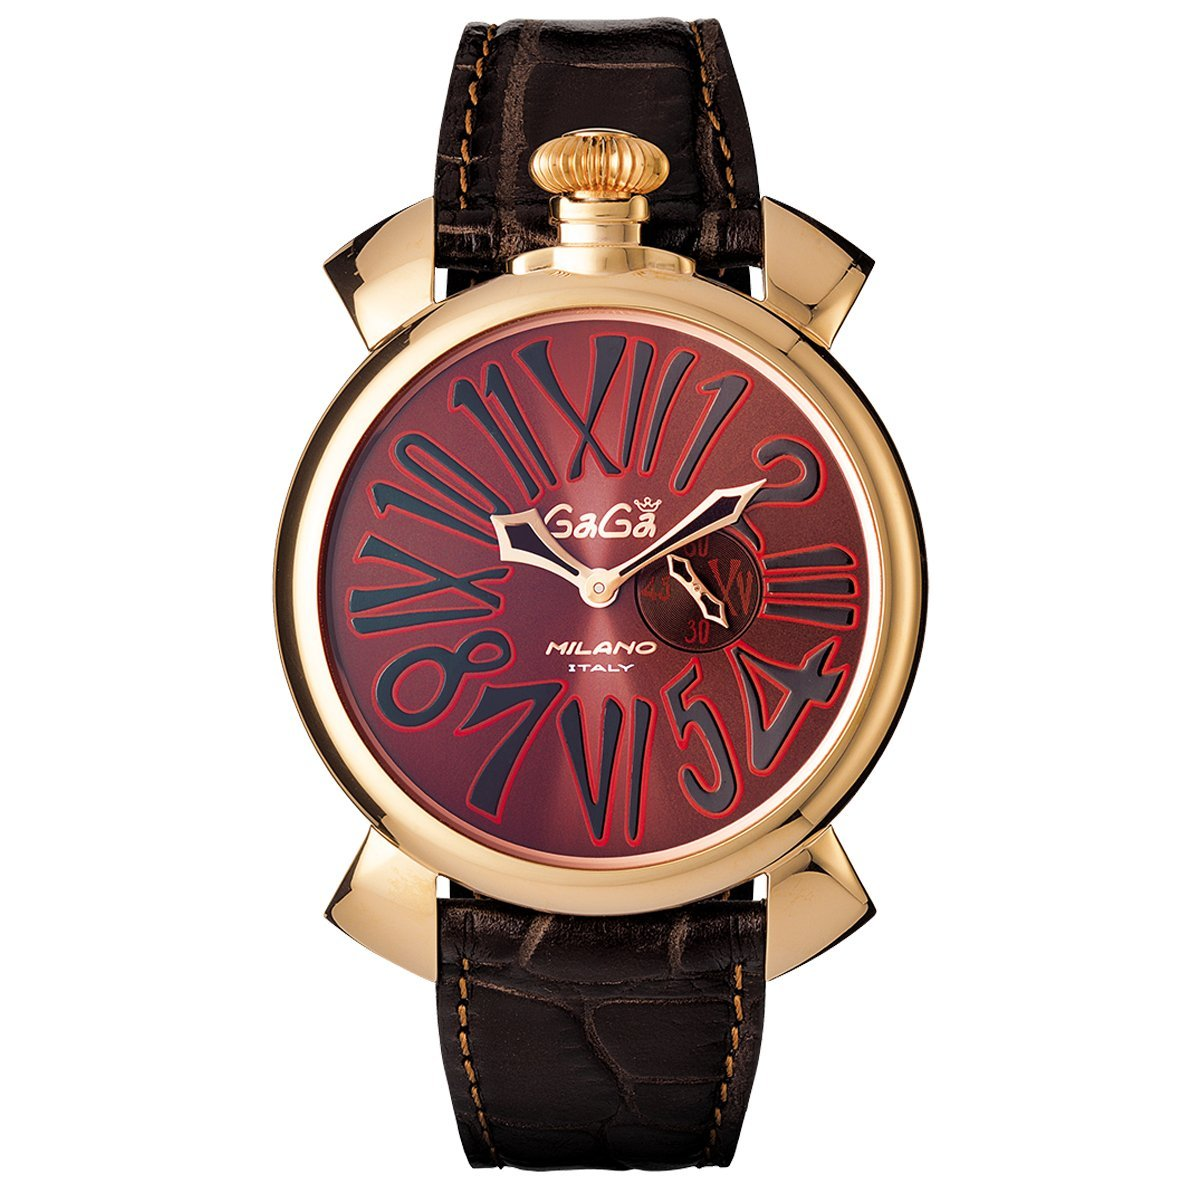 Gaga Milano Slim 46 Rose Gold Brown - Watches & Crystals